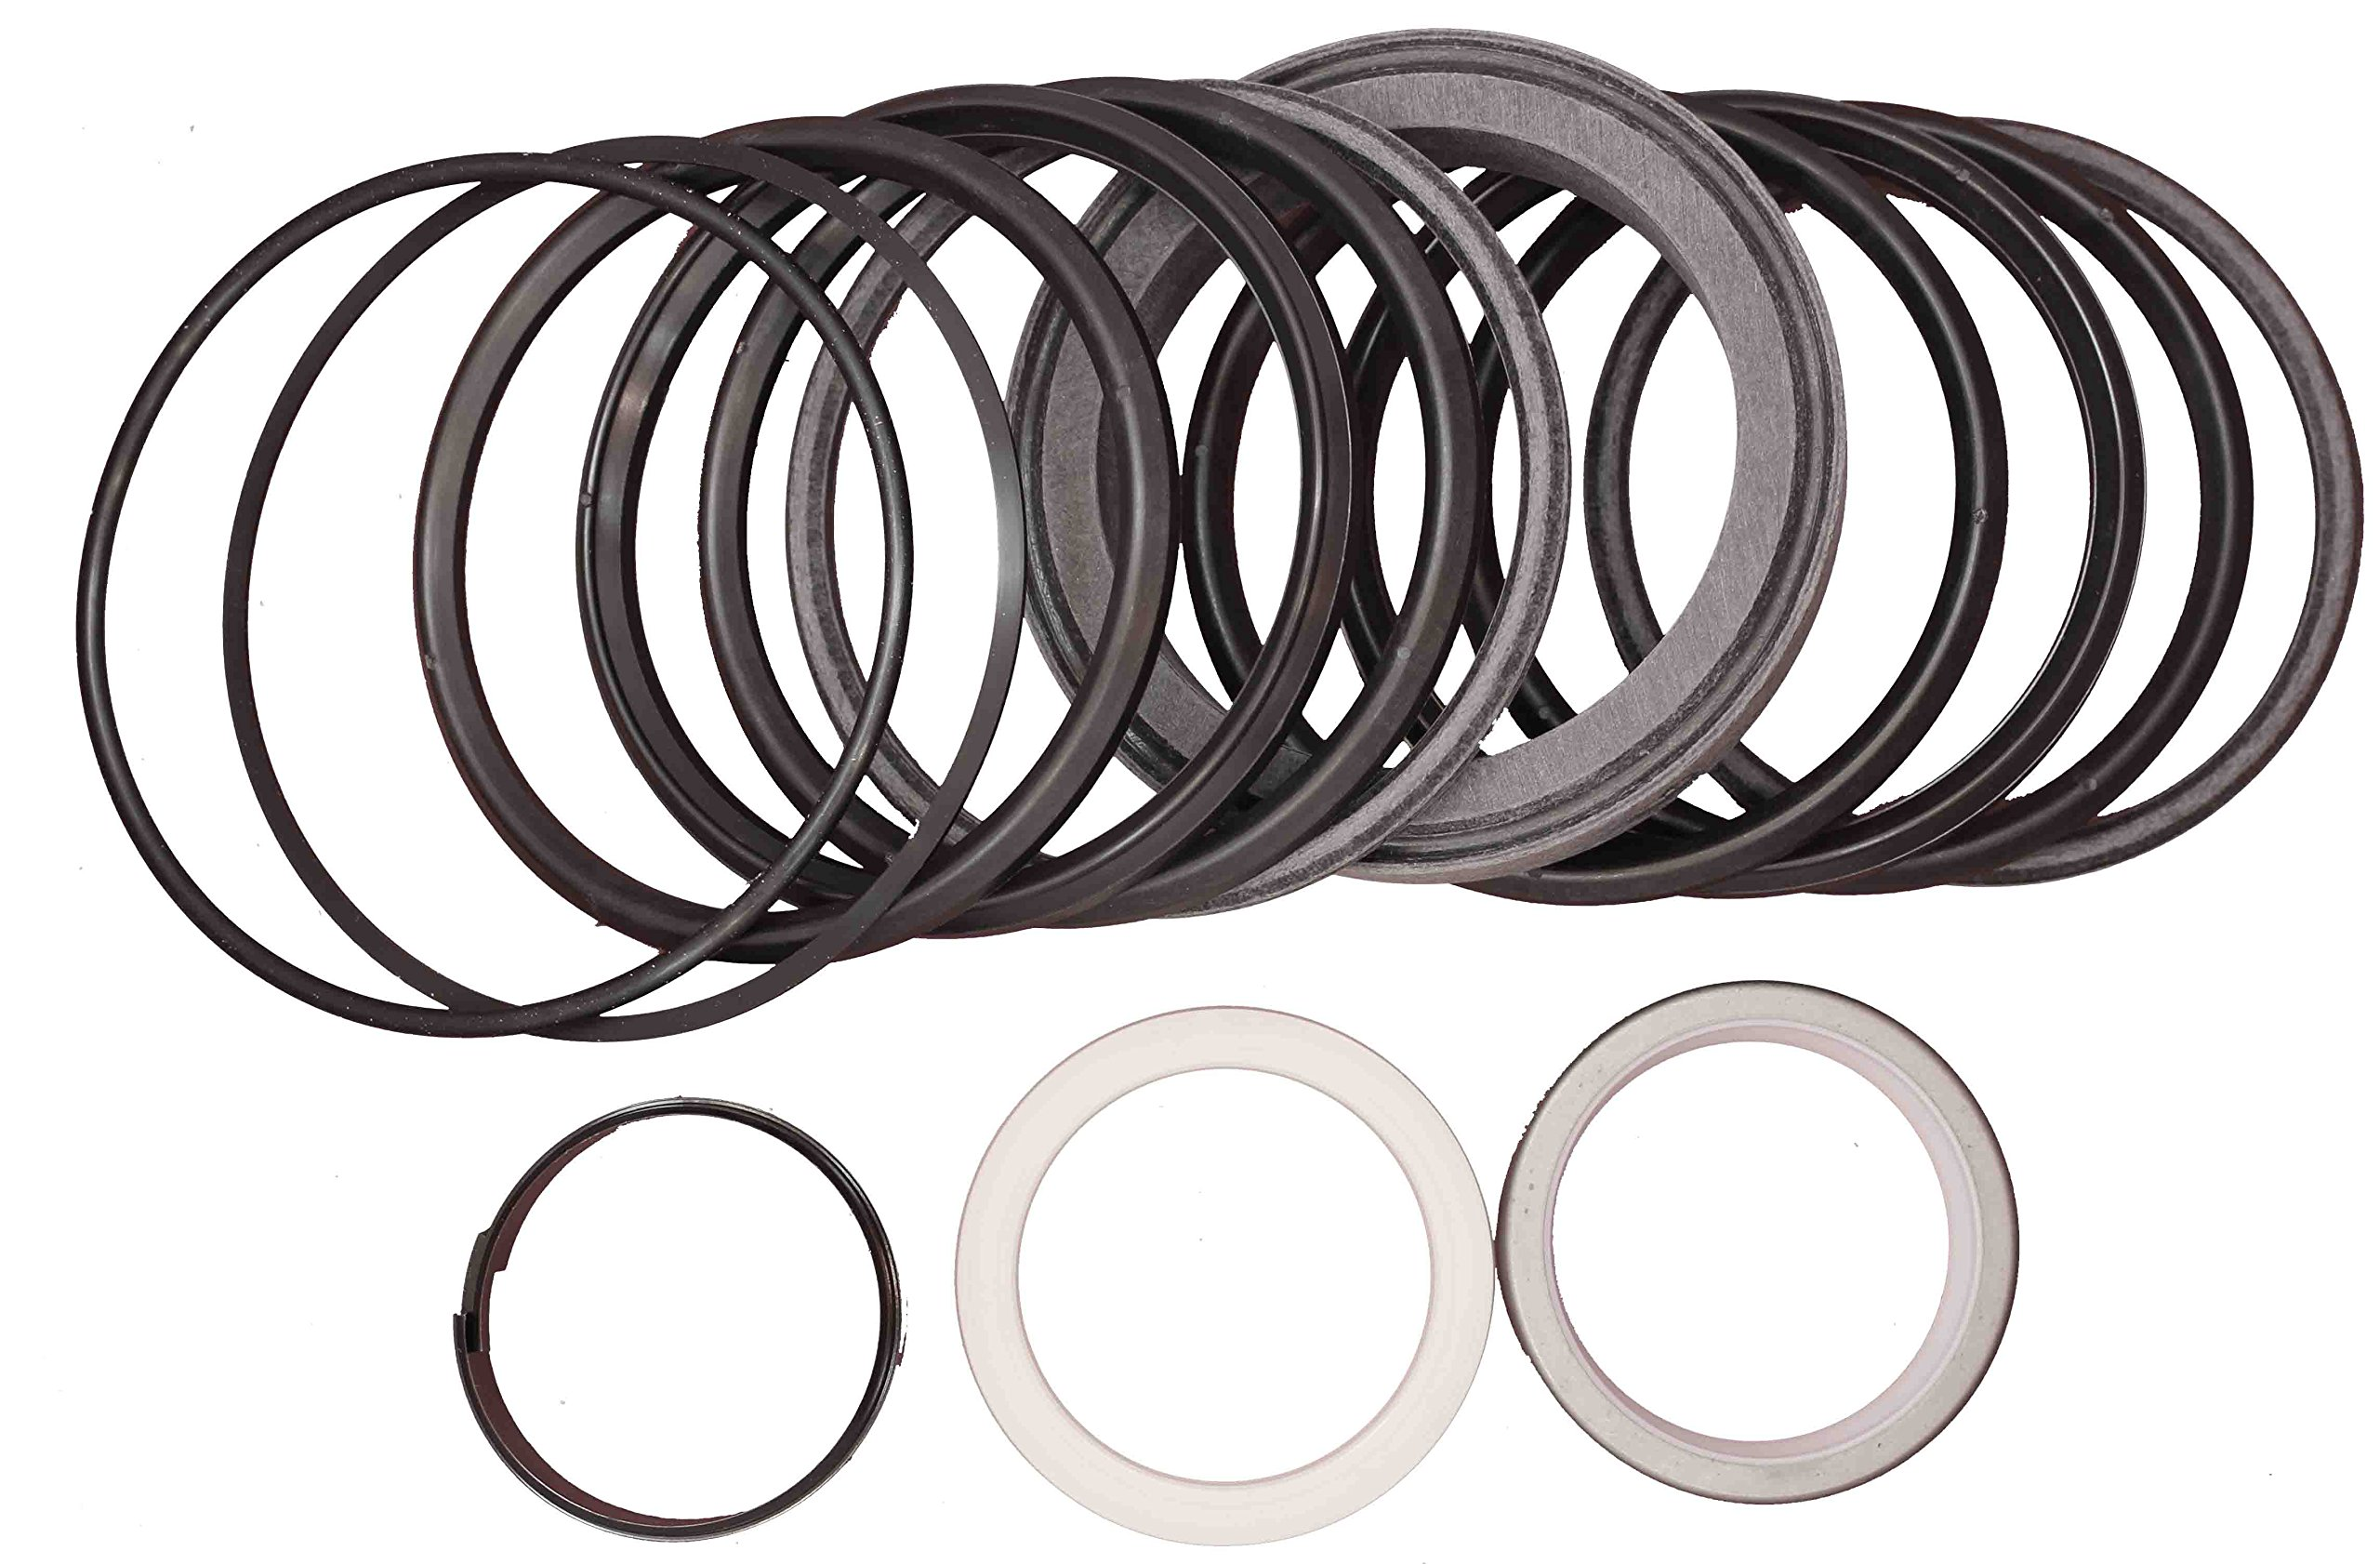 CASE G32616 HYDRAULIC CYLINDER SEAL KIT by TORNADO HEAVY EQUIPMENT PARTS (Image #1)